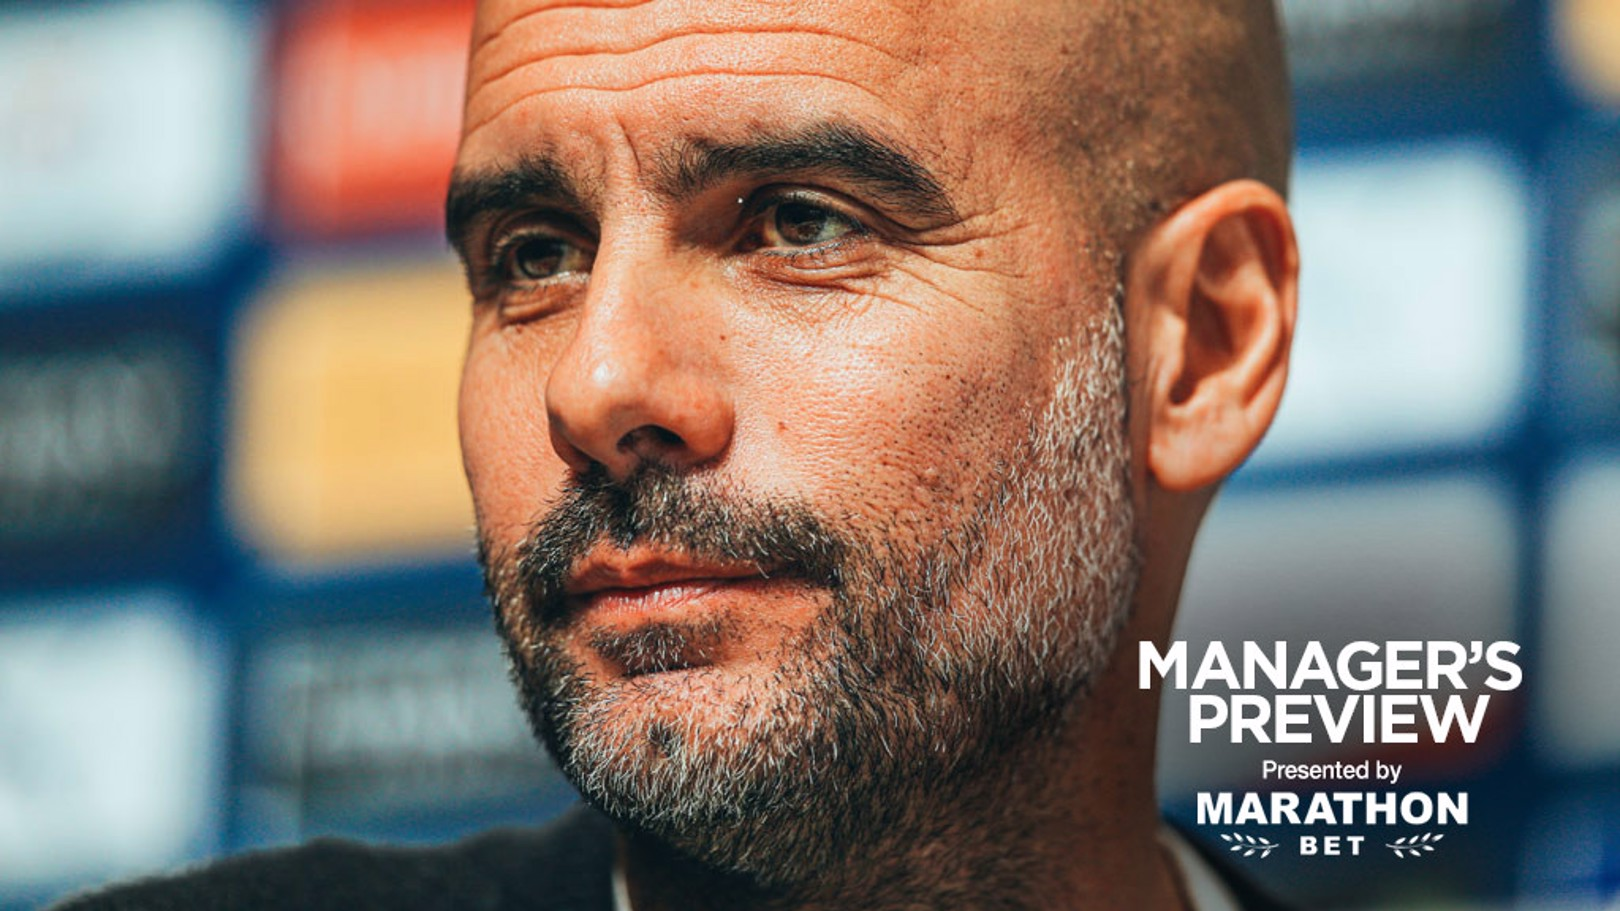 PREVIEW: Pep Guardiola addresses the media ahead of the trip to Burnley.